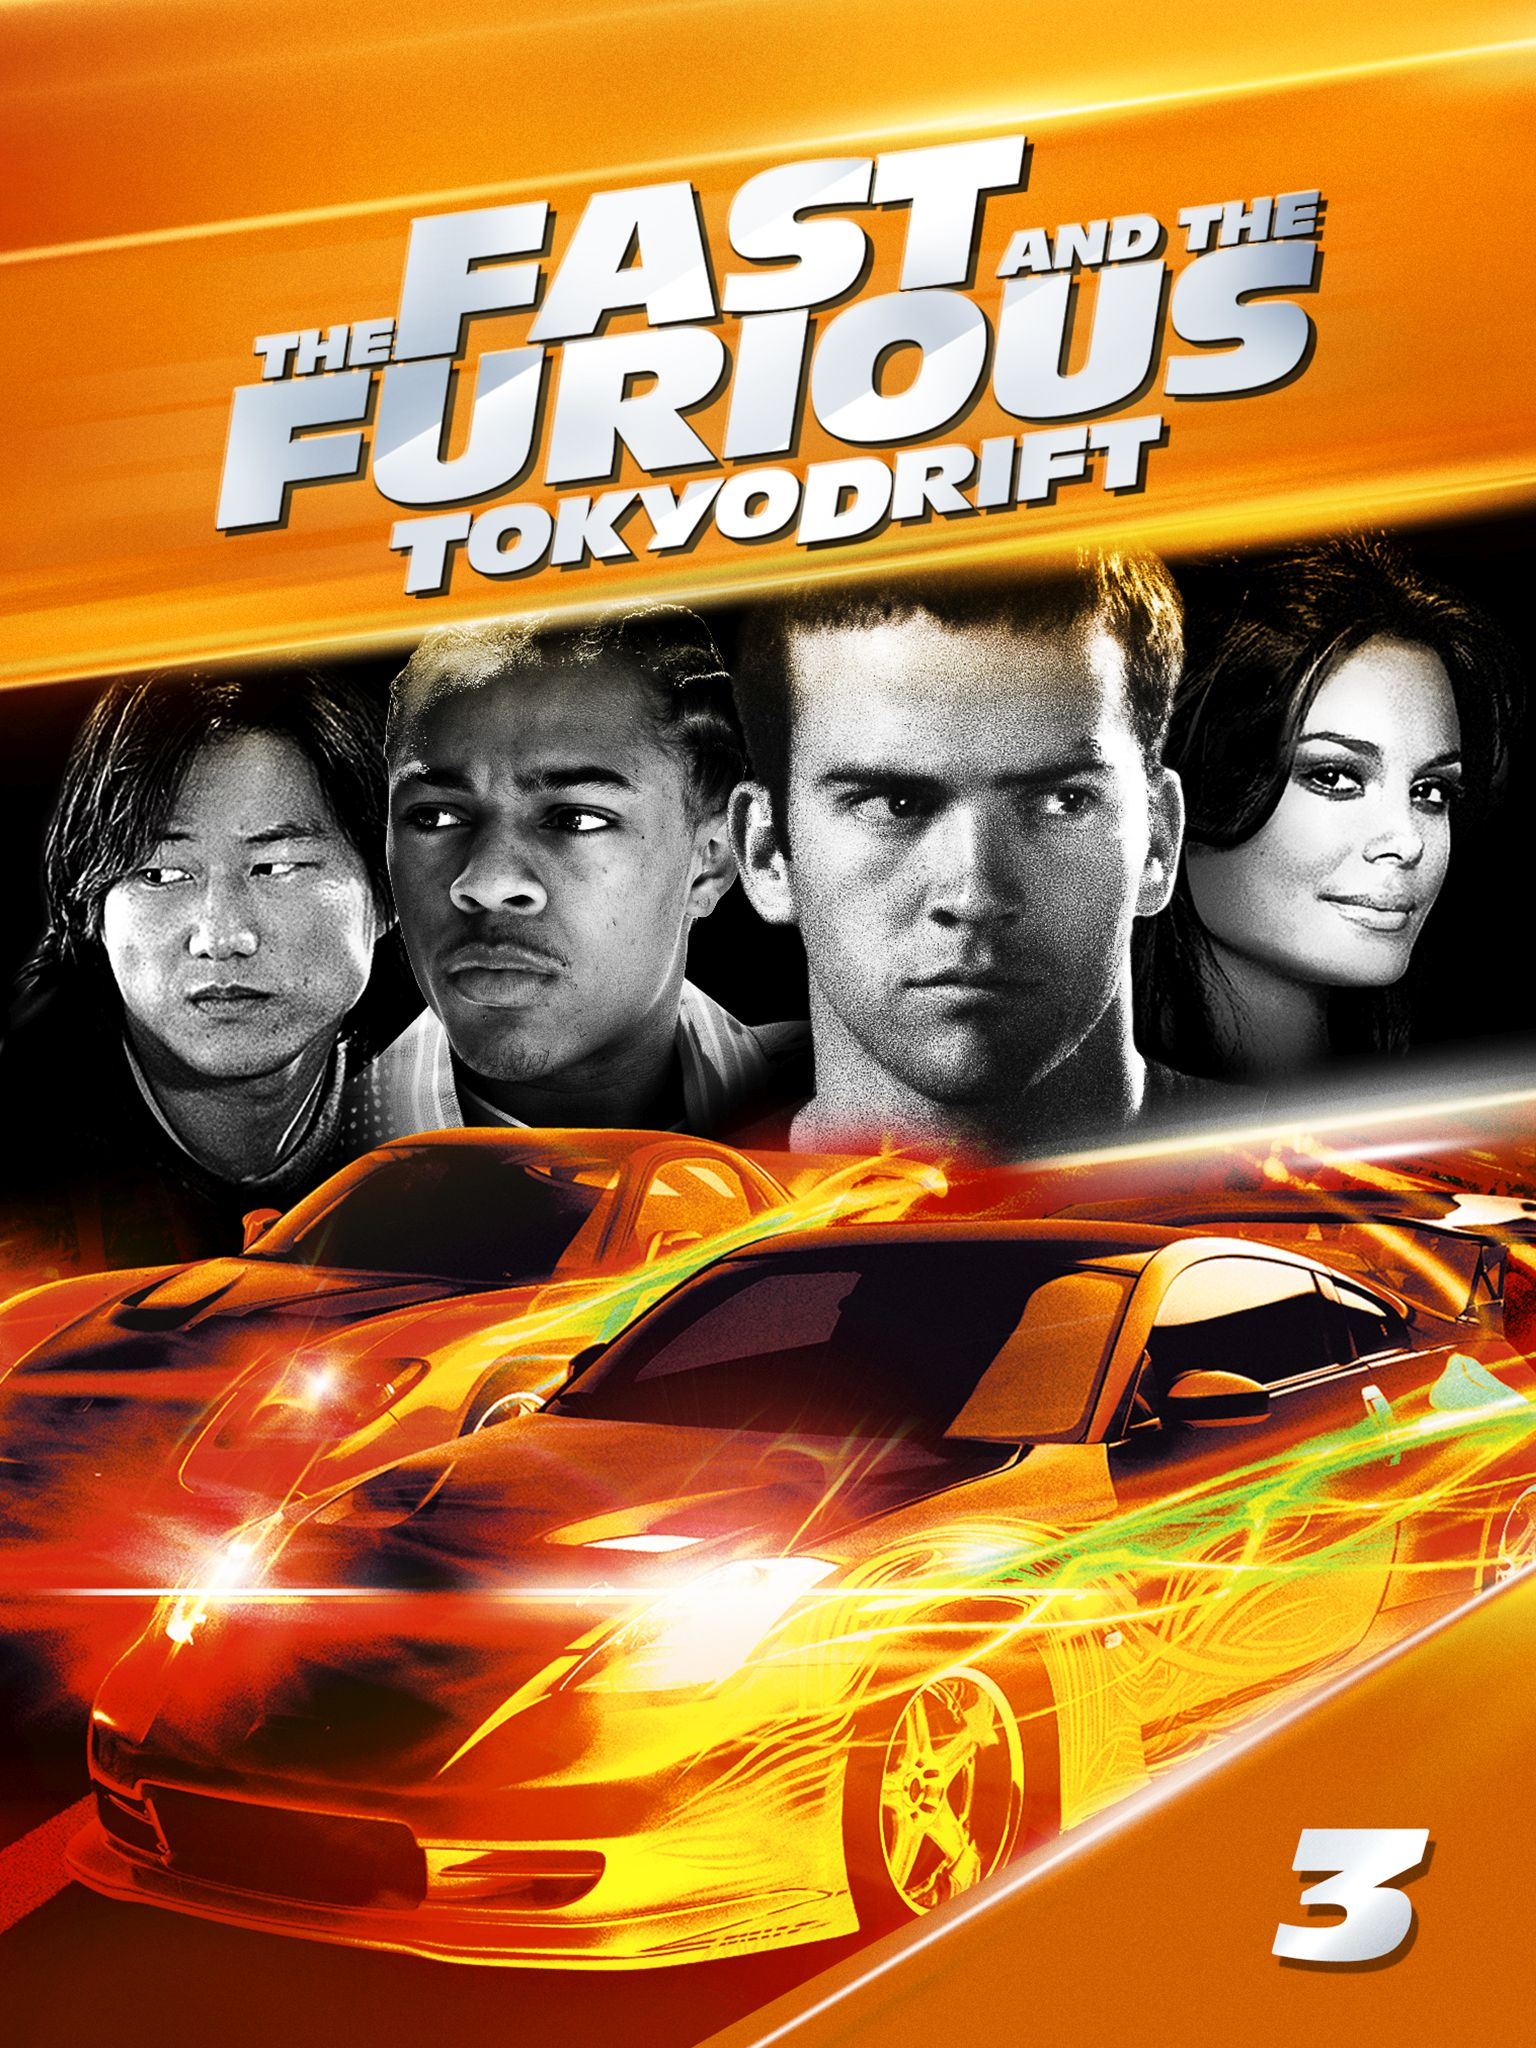 Download free fast and tokyo days drift furious six songs